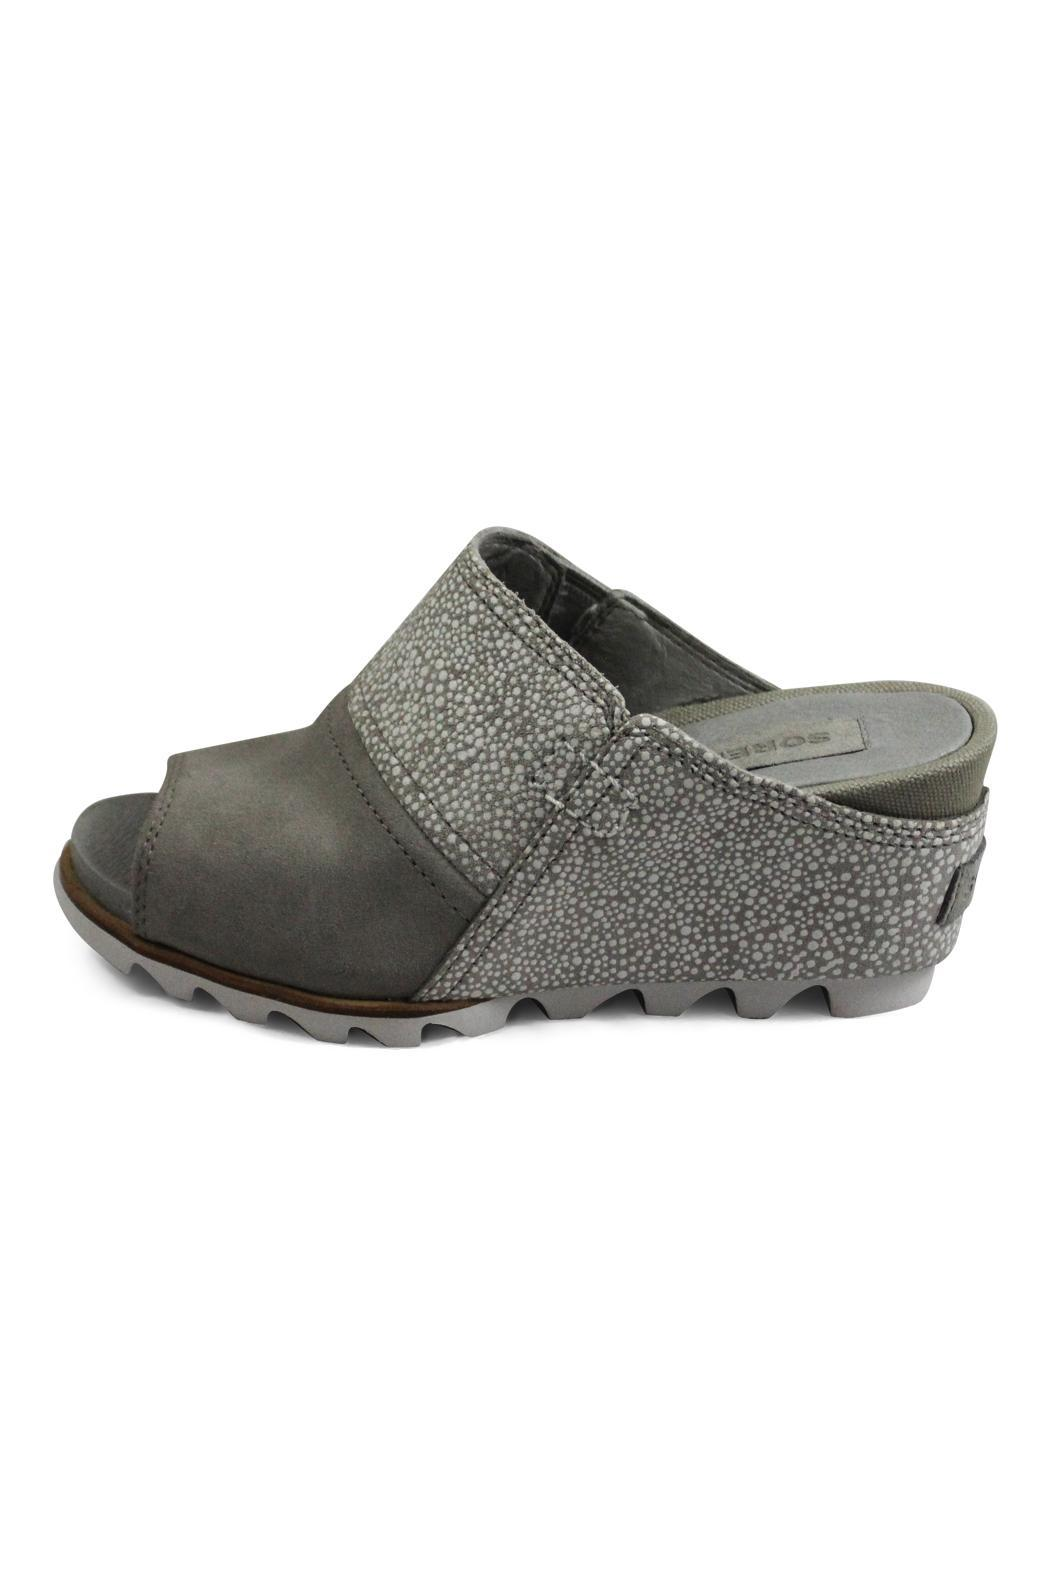 ee93642b6181 Sorel Grey Wedge Sandal from British Columbia by Big Boot Inn ...